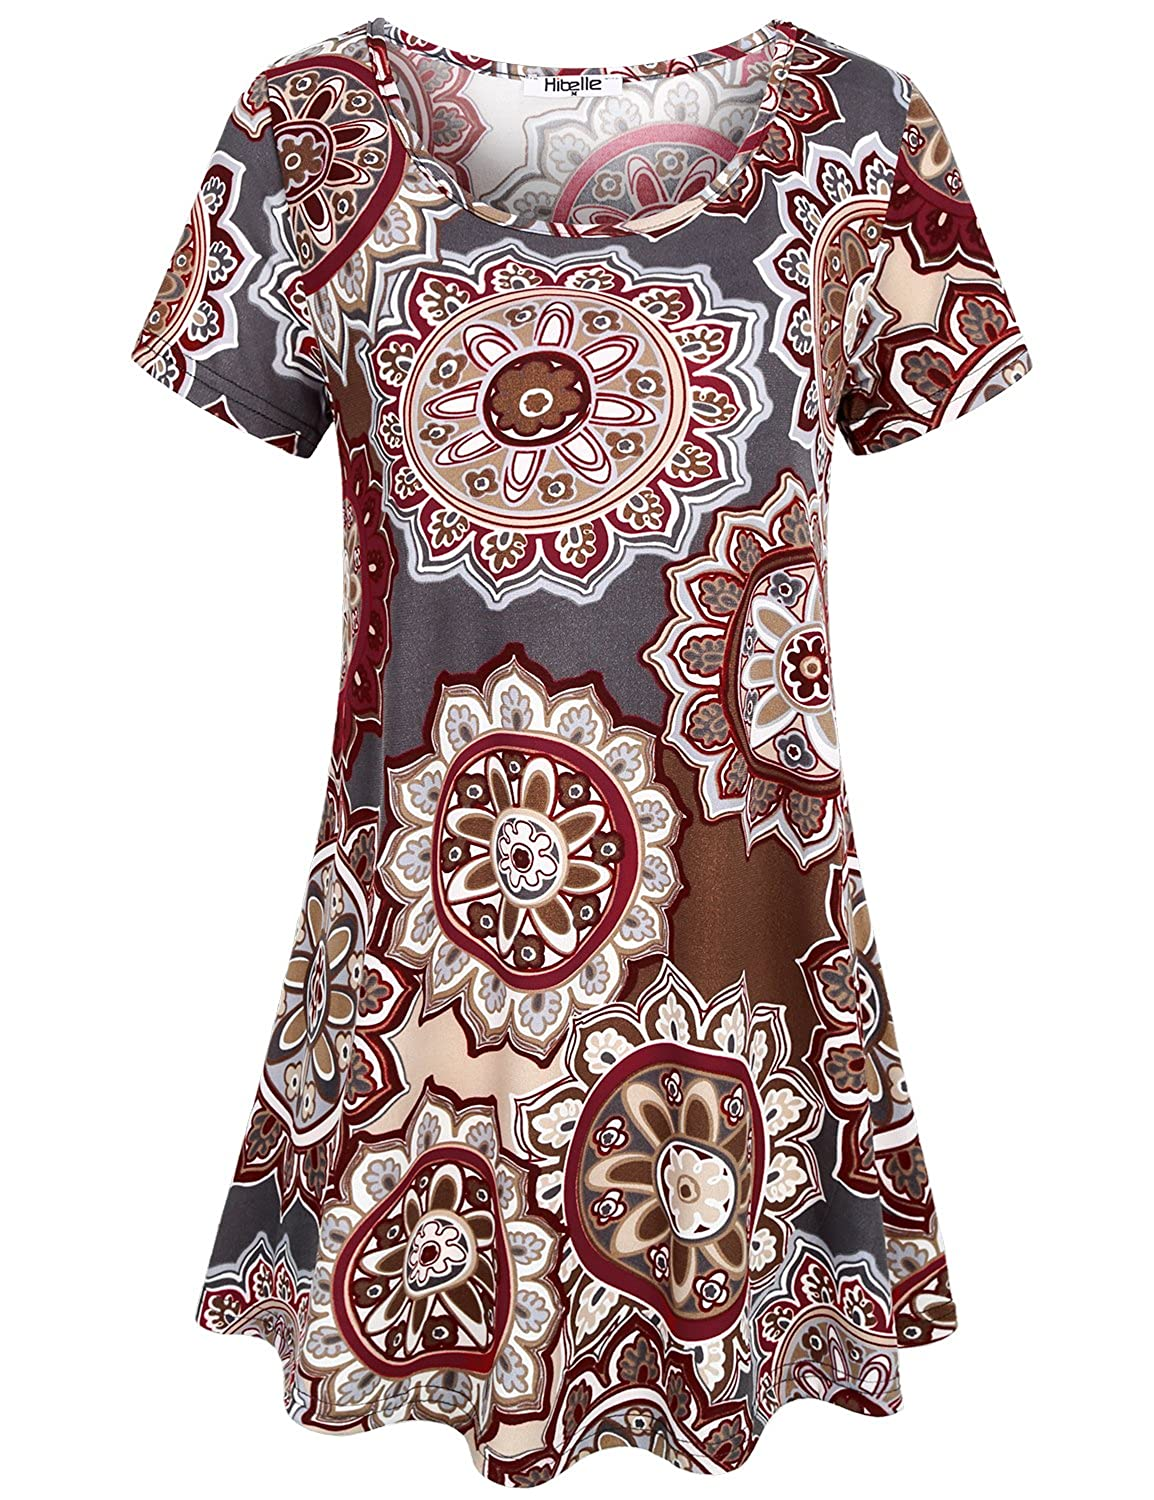 a4e36dc120d Top1  Hibelle Women s Crew Neck Short Sleeve Printed Flared Tunic Tops